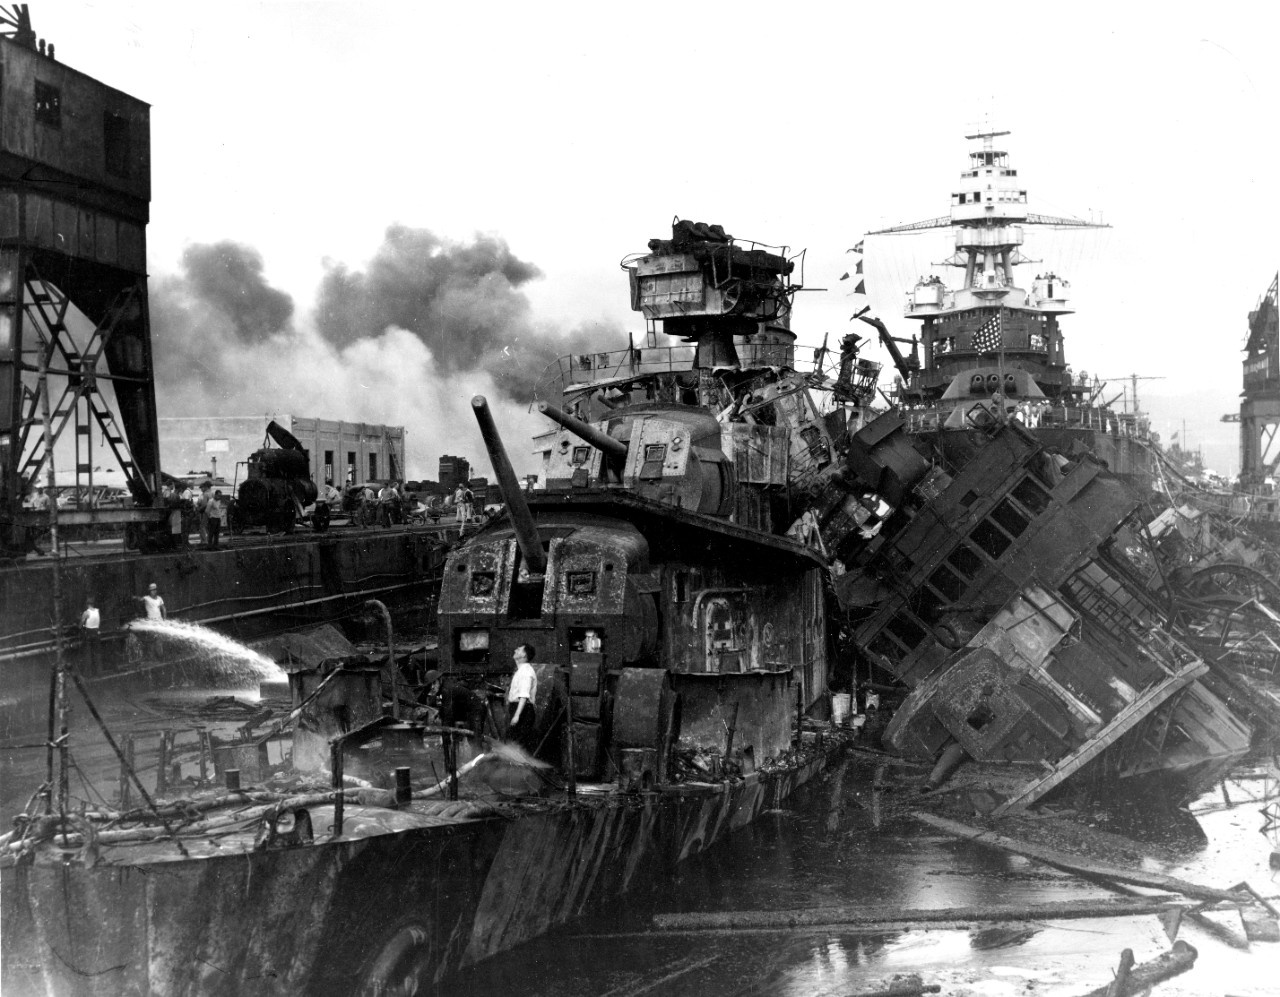 """USS Downes, at left, and USS Cassin, capsized at right, burned out and sunk in the Pearl Harbor Navy Yard drydock on 7 December 1941, after the Japanese attack. The relatively undamaged USS Pennsylvania is in the background."" Note the man in a white shir"